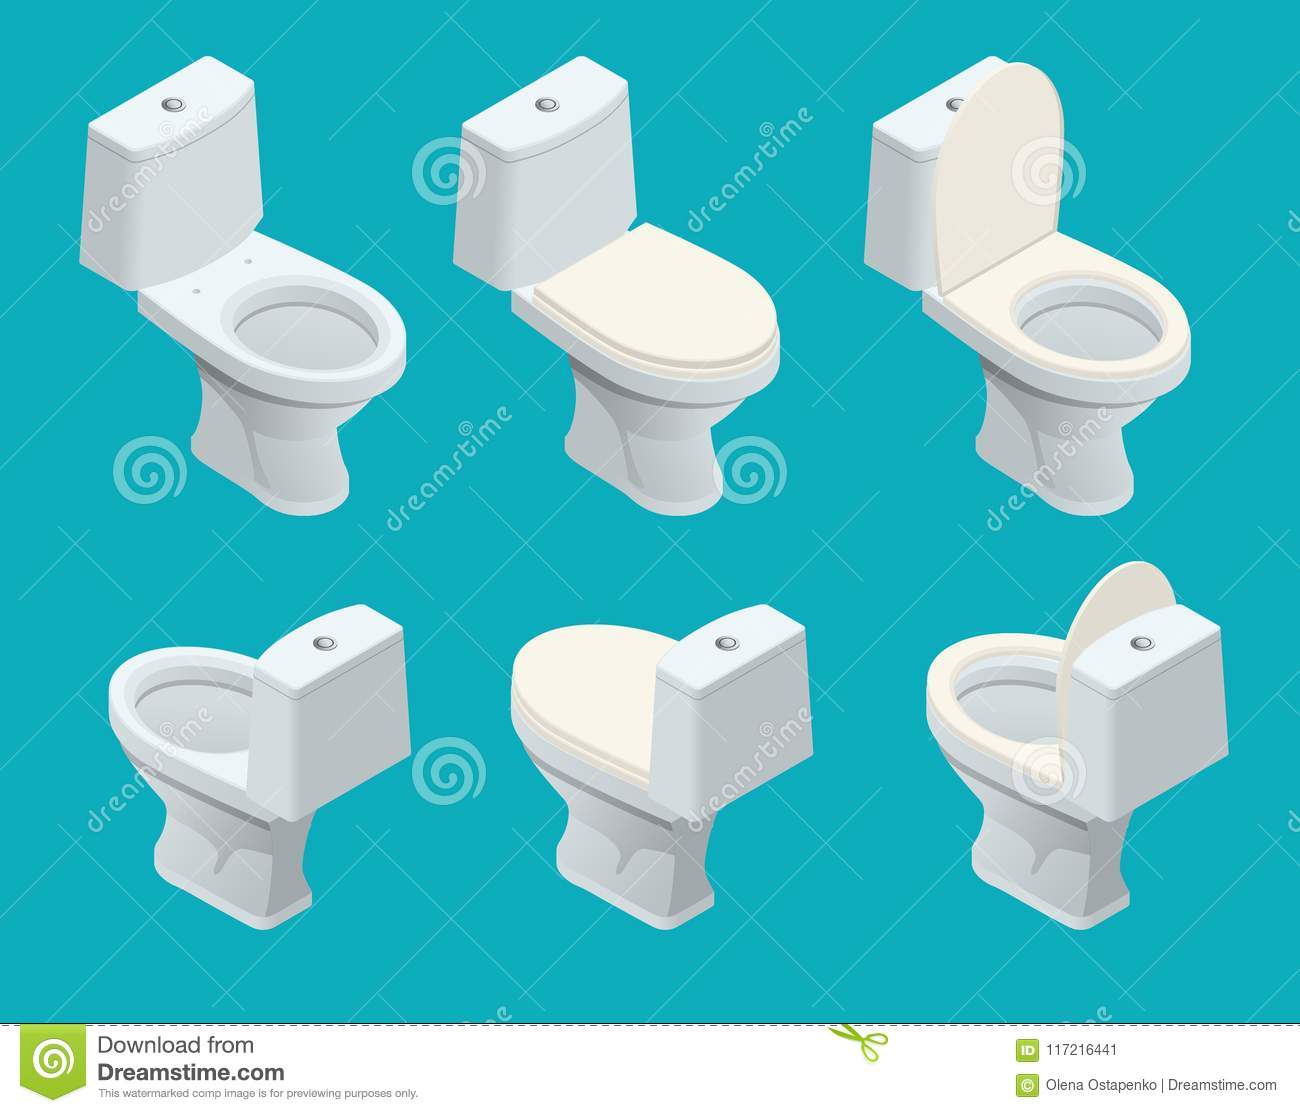 Isometric Toilet Equipment Collection For Interior Design. Set Of ...